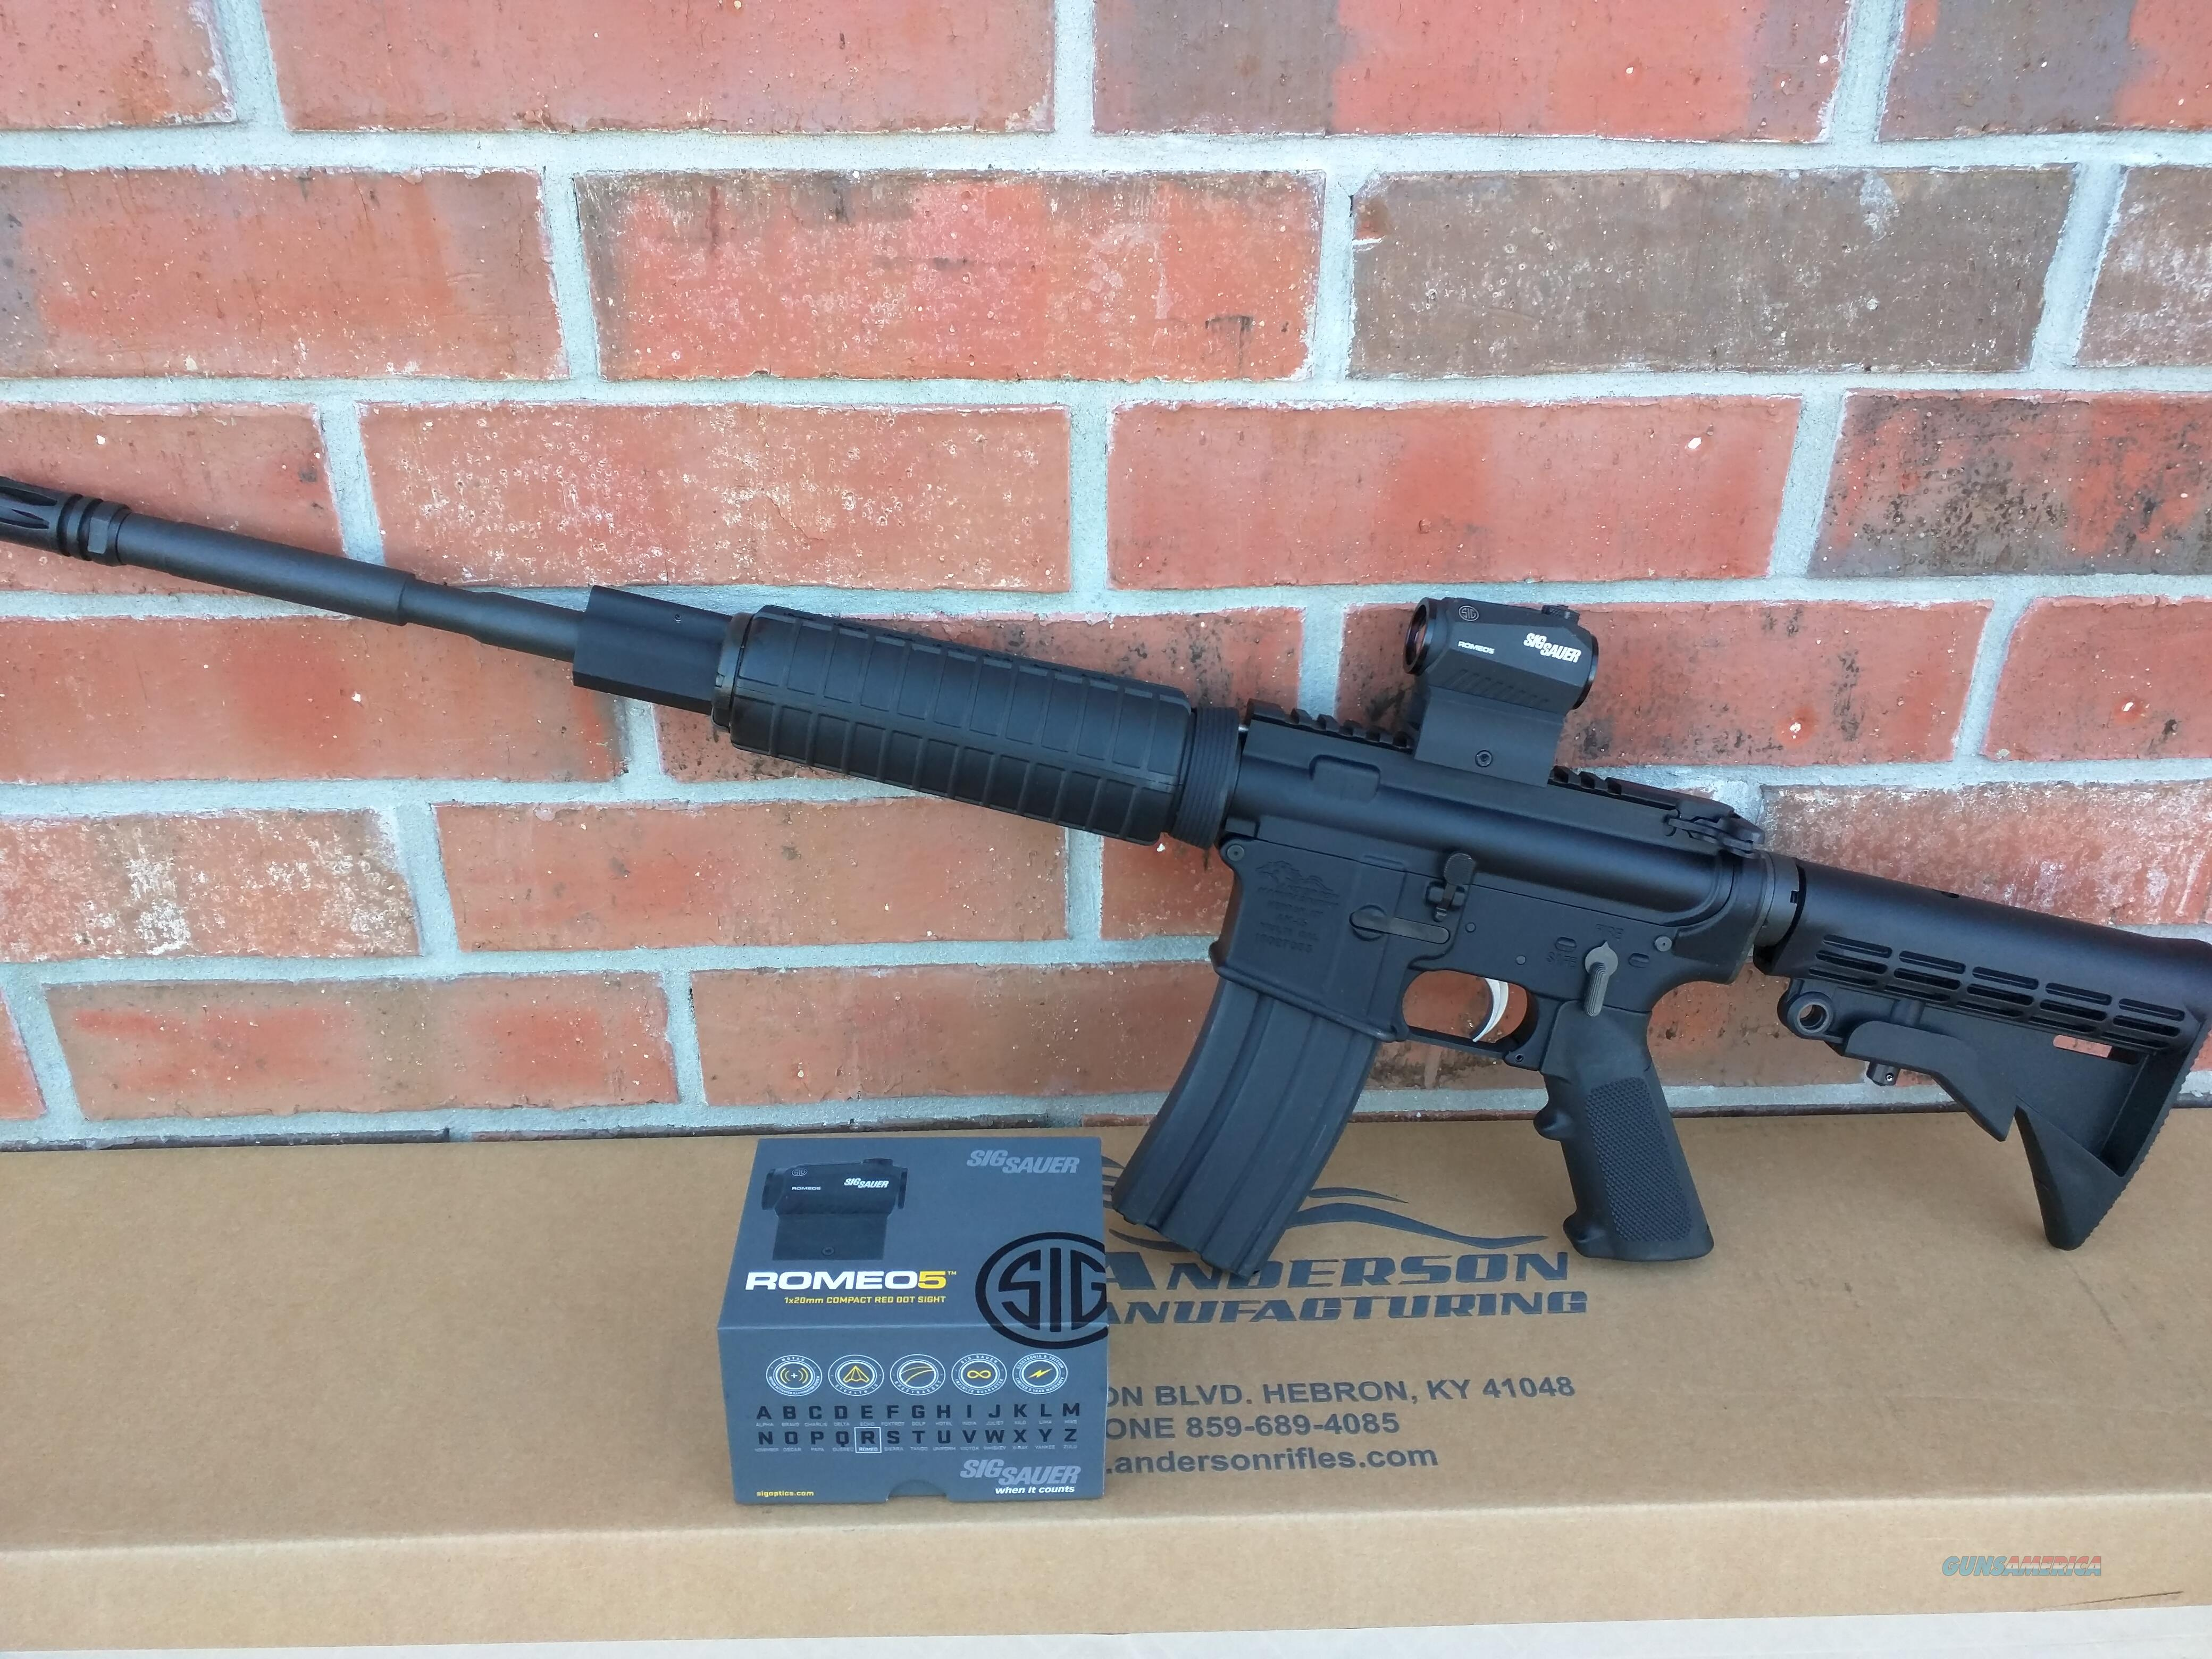 """Anderson AR15 AR 15  SALE!!! SIG SAUER Romeo 5 RED DOT COMBO!!! 5.56/223 16"""" ALL NIB SALE!!!! COMBO DEAL!!! FREE LAYAWAY!!  Guns > Rifles > AR-15 Rifles - Small Manufacturers > Complete Rifle"""